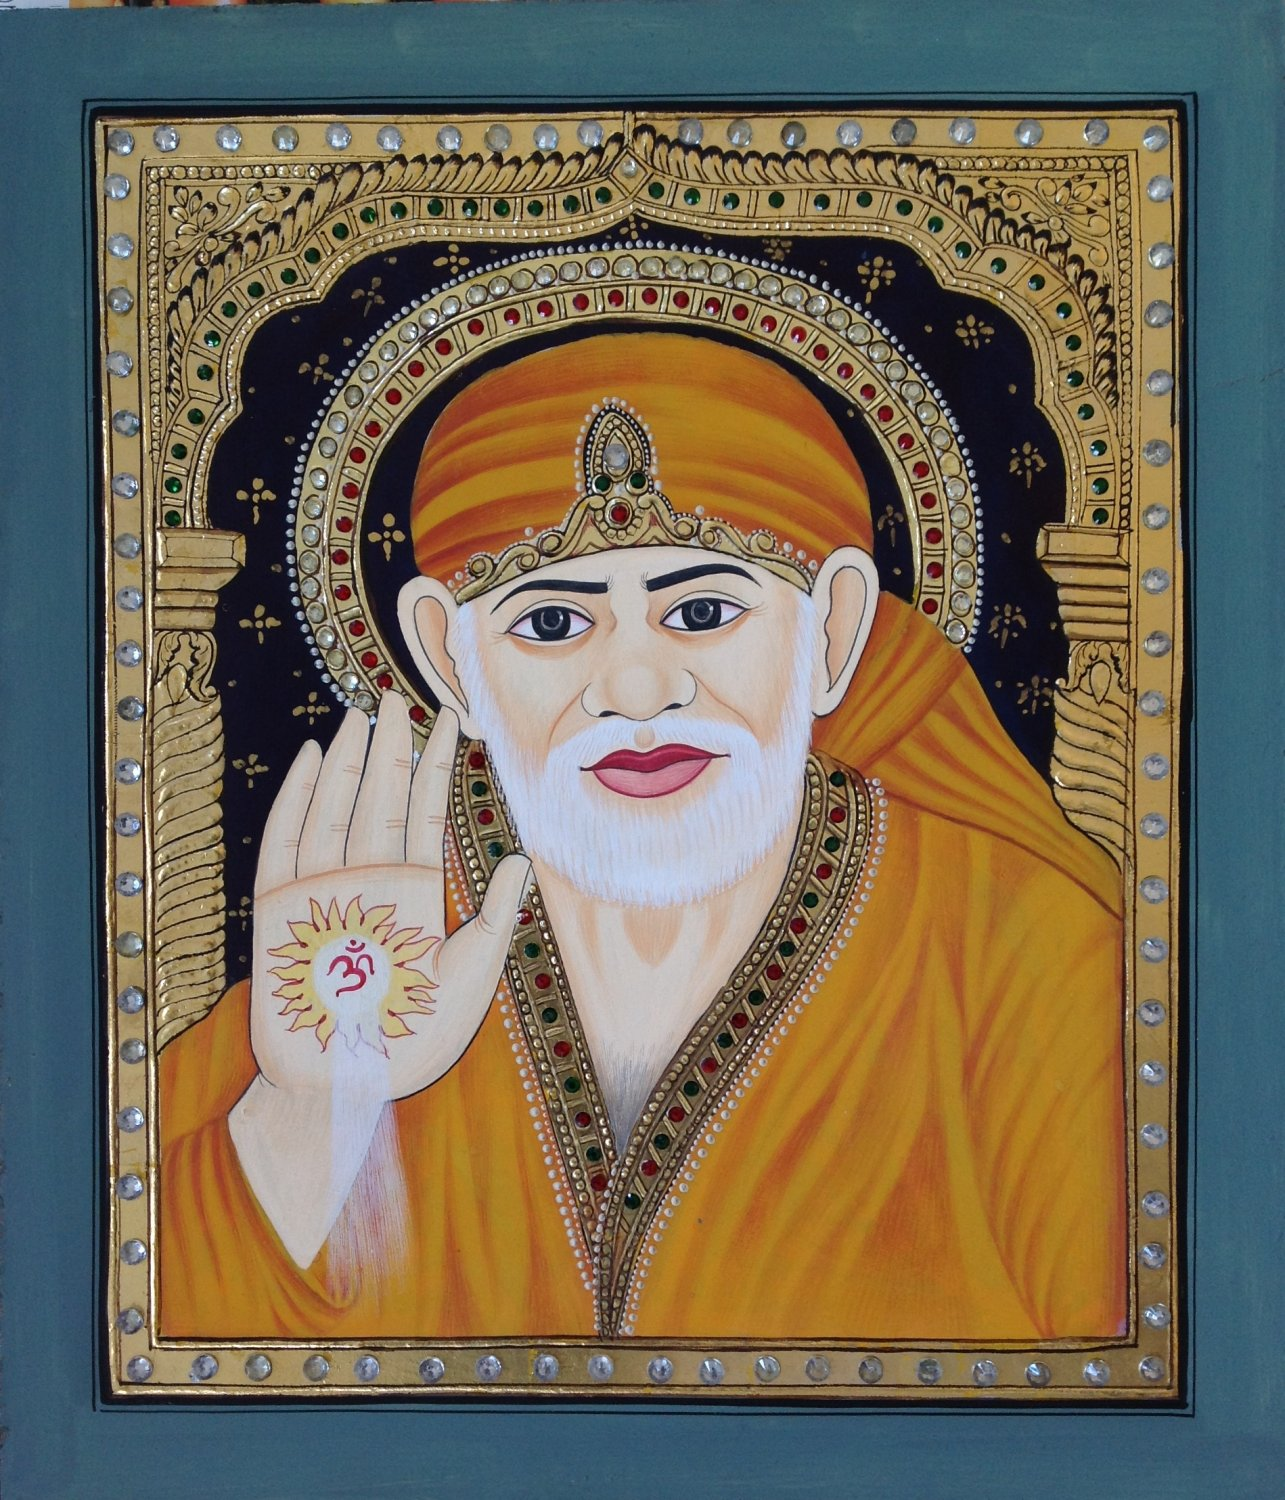 Tanjore Shirdi Sai Baba Painting Handmade Indian Thanjavur Wall Decor Gold Art